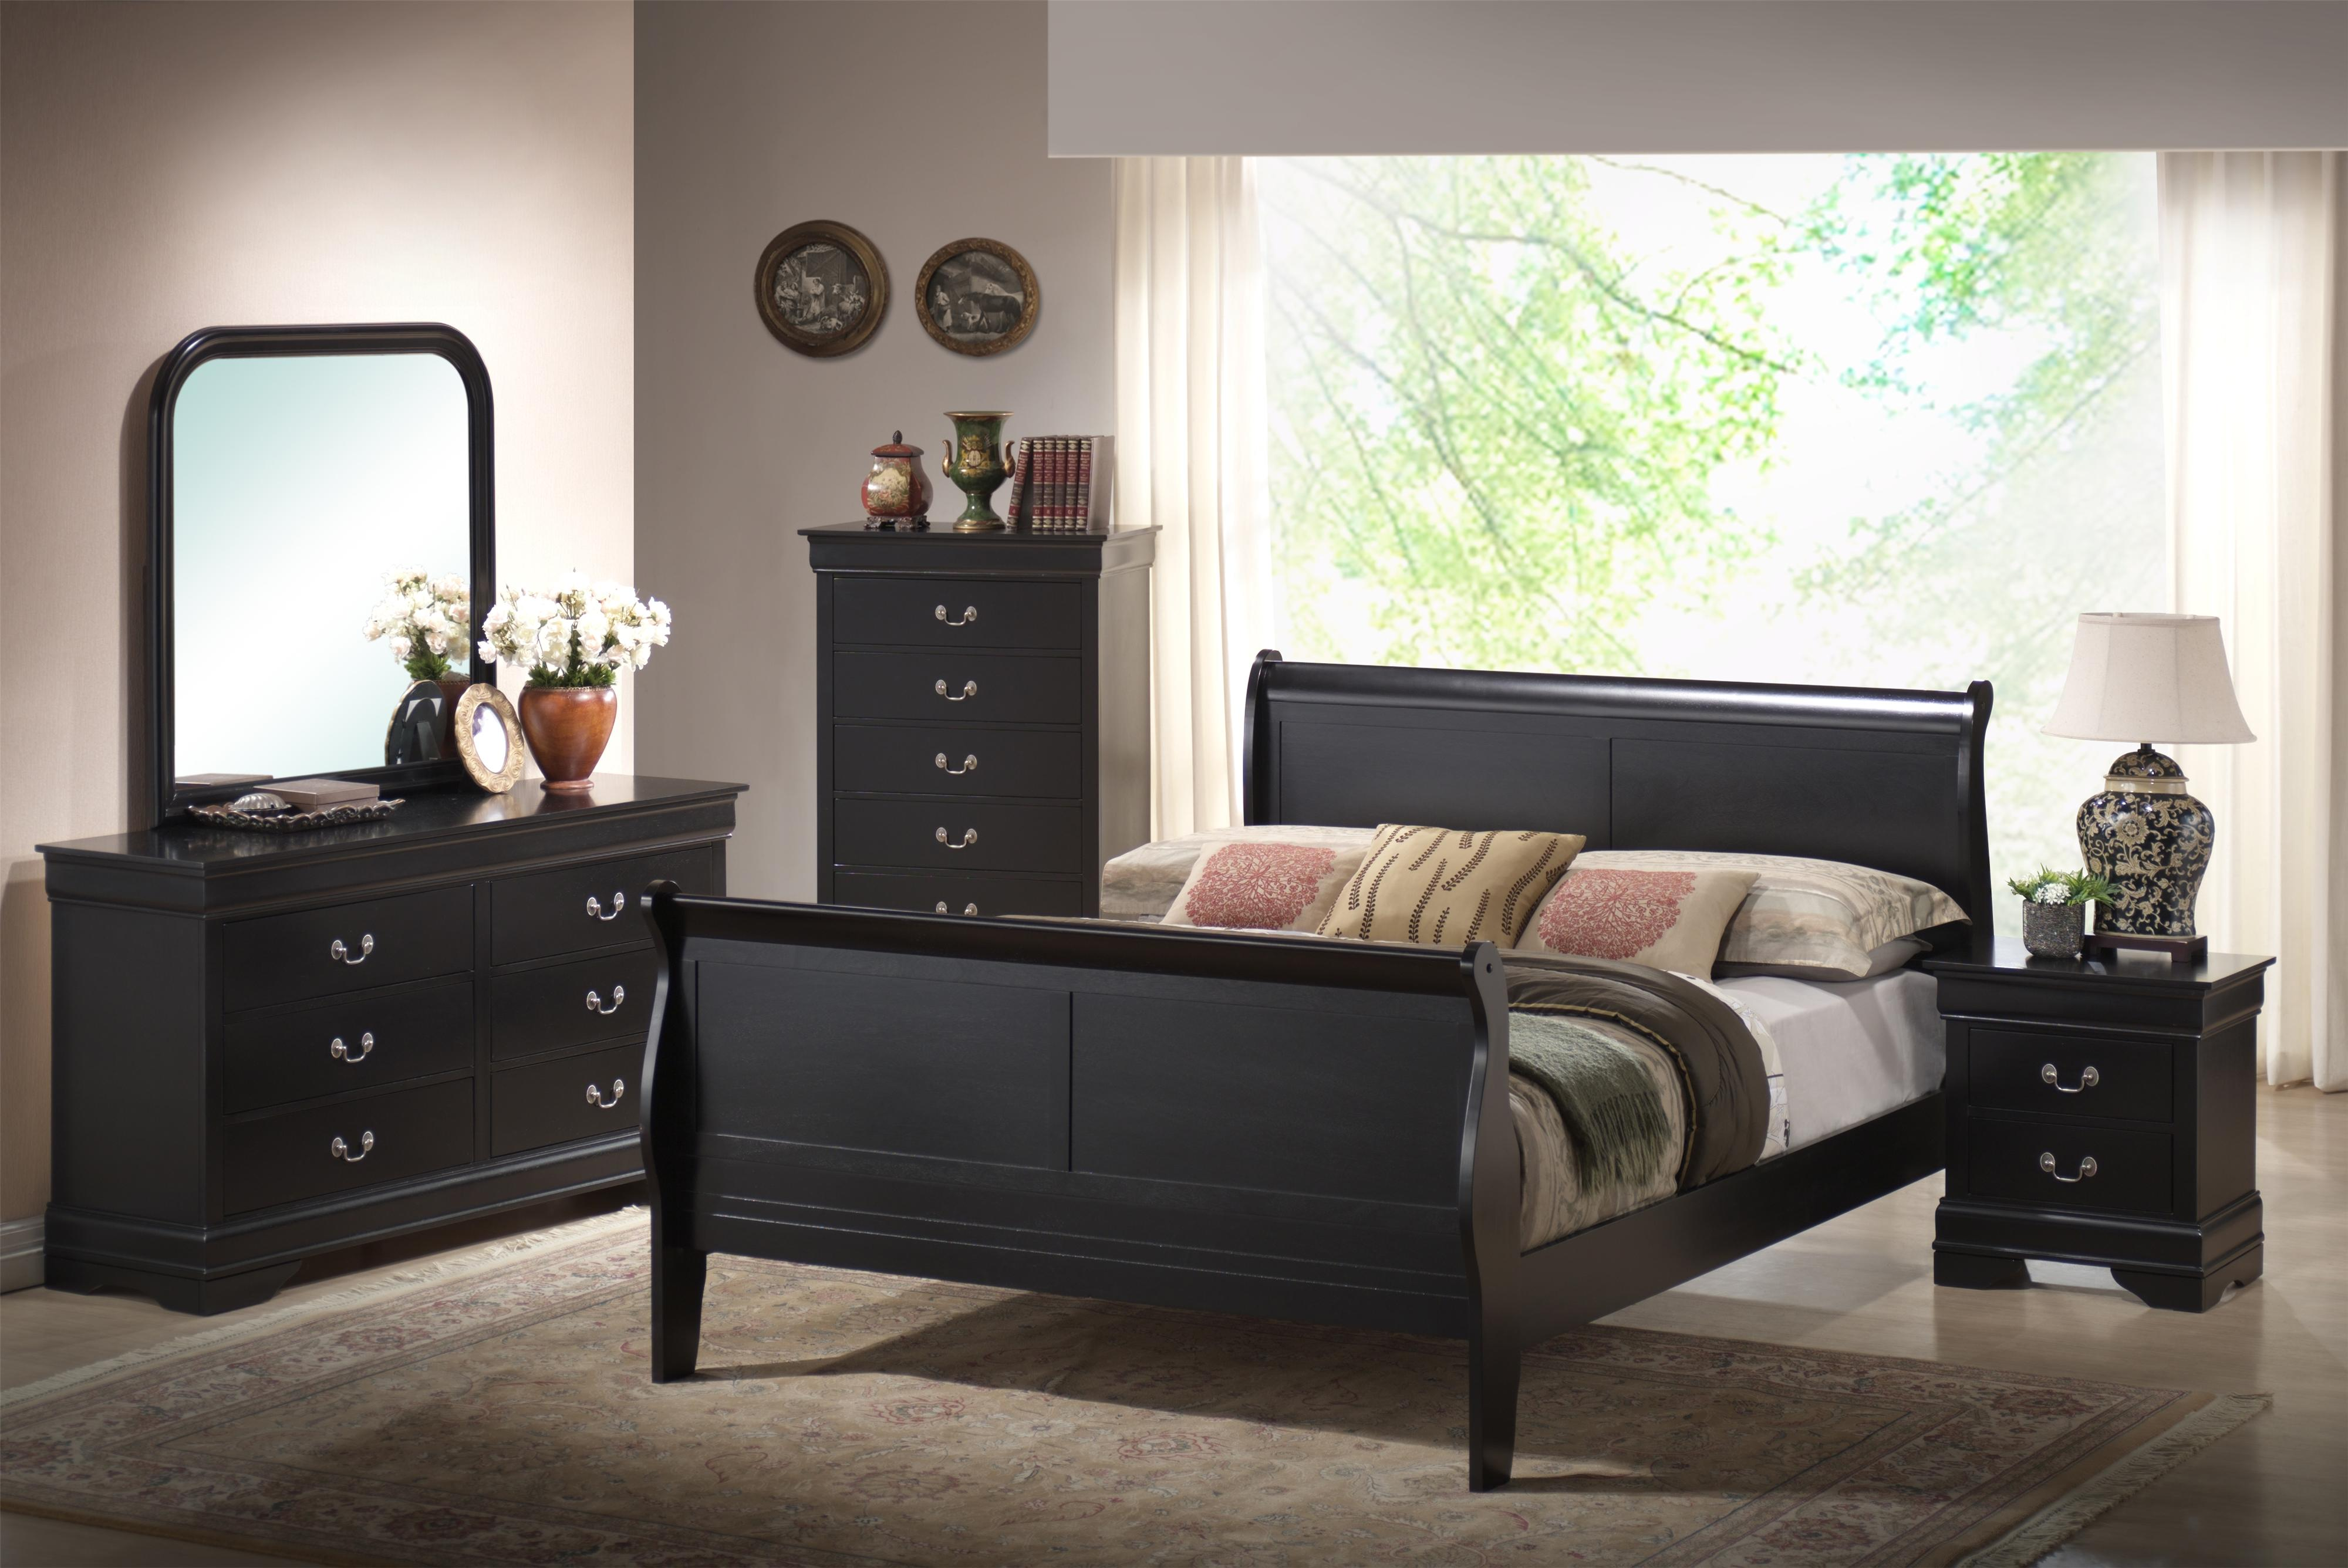 Lifestyle 5934 6 Piece Bedroom Group - Item Number: B5934-5